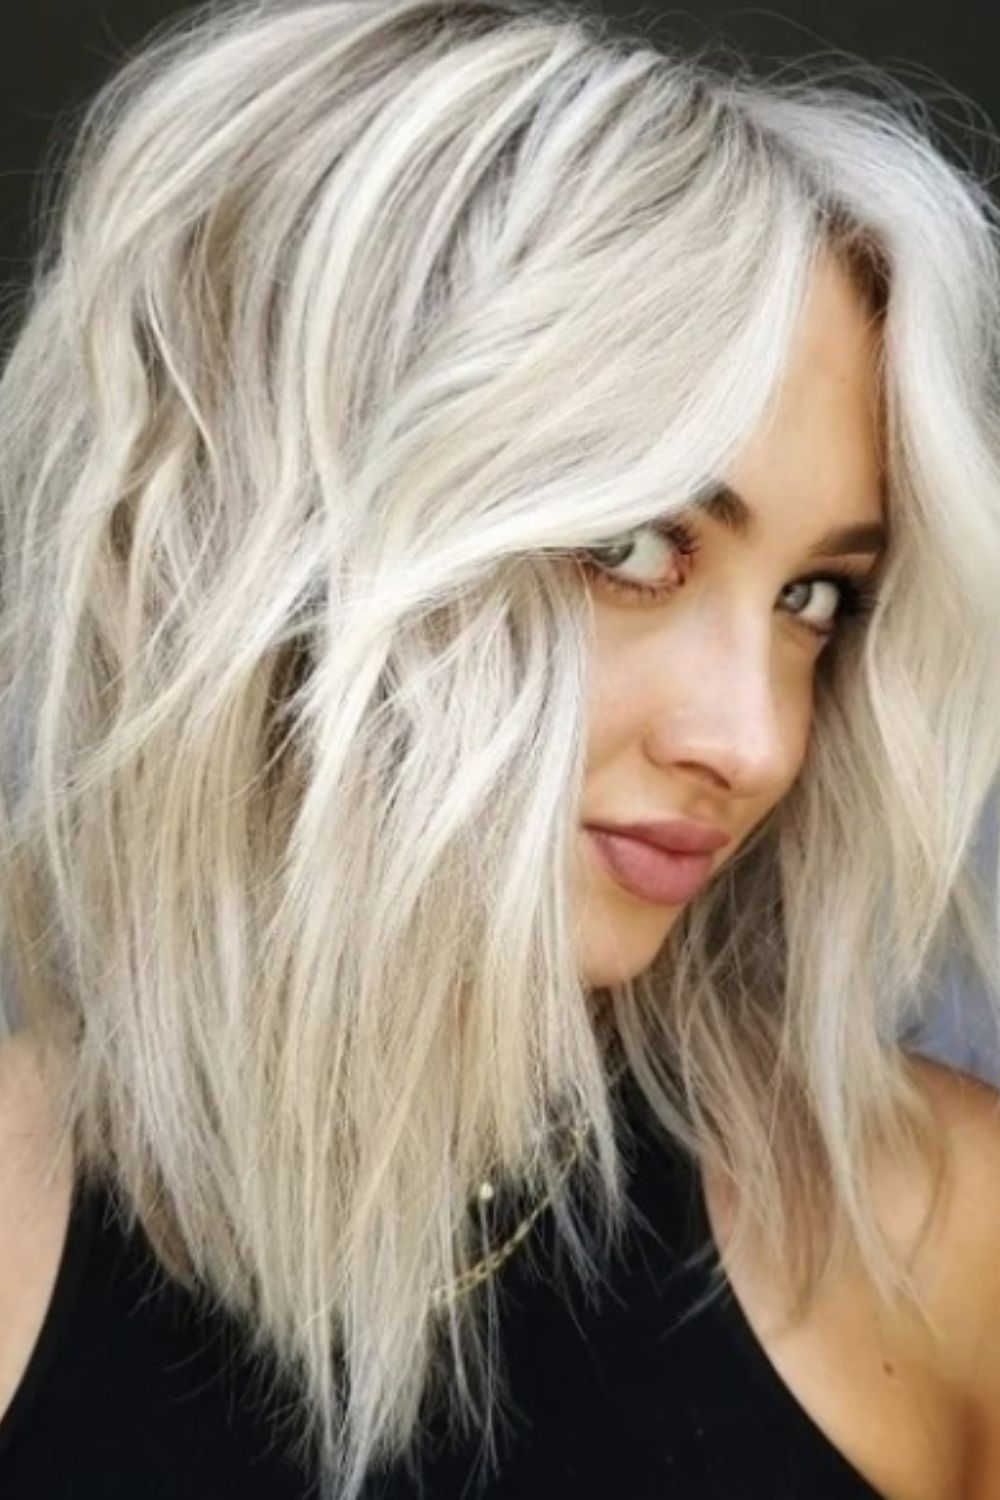 How to Cut Such Layered Hair with Curtain Bangs?